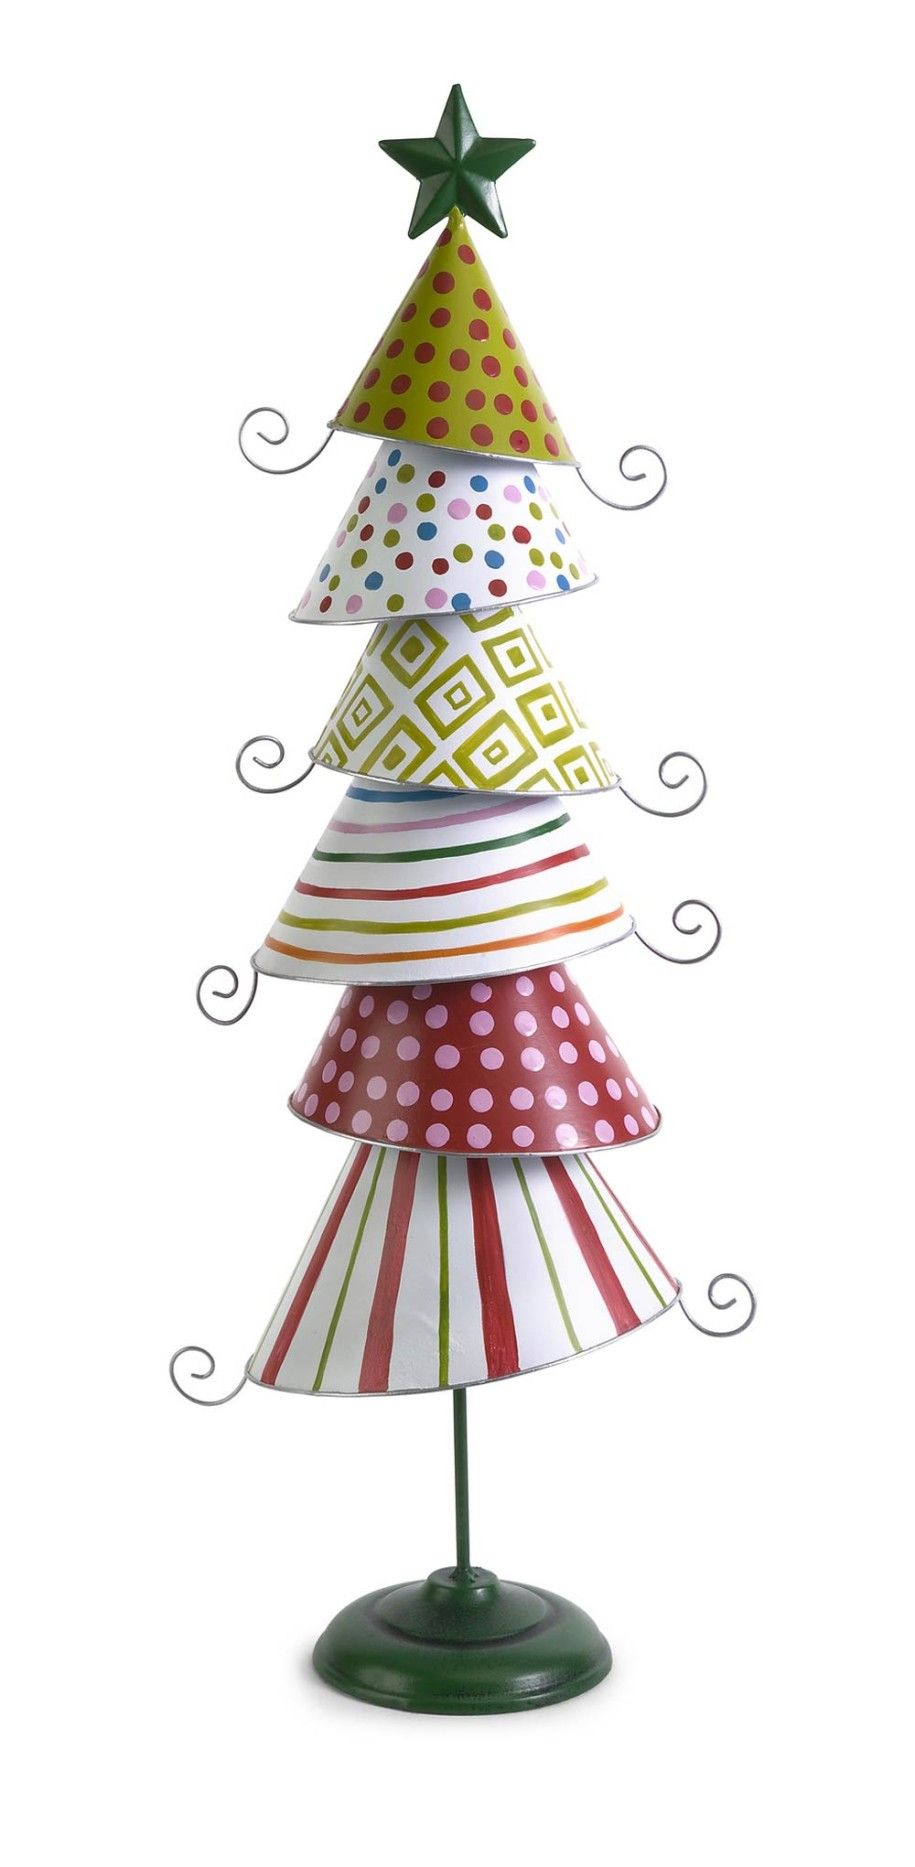 Beautify Your Precious Day with Dazzling Tabletop Christmas Trees : Cute Whimsy Tabletop Metal Tree Decorations